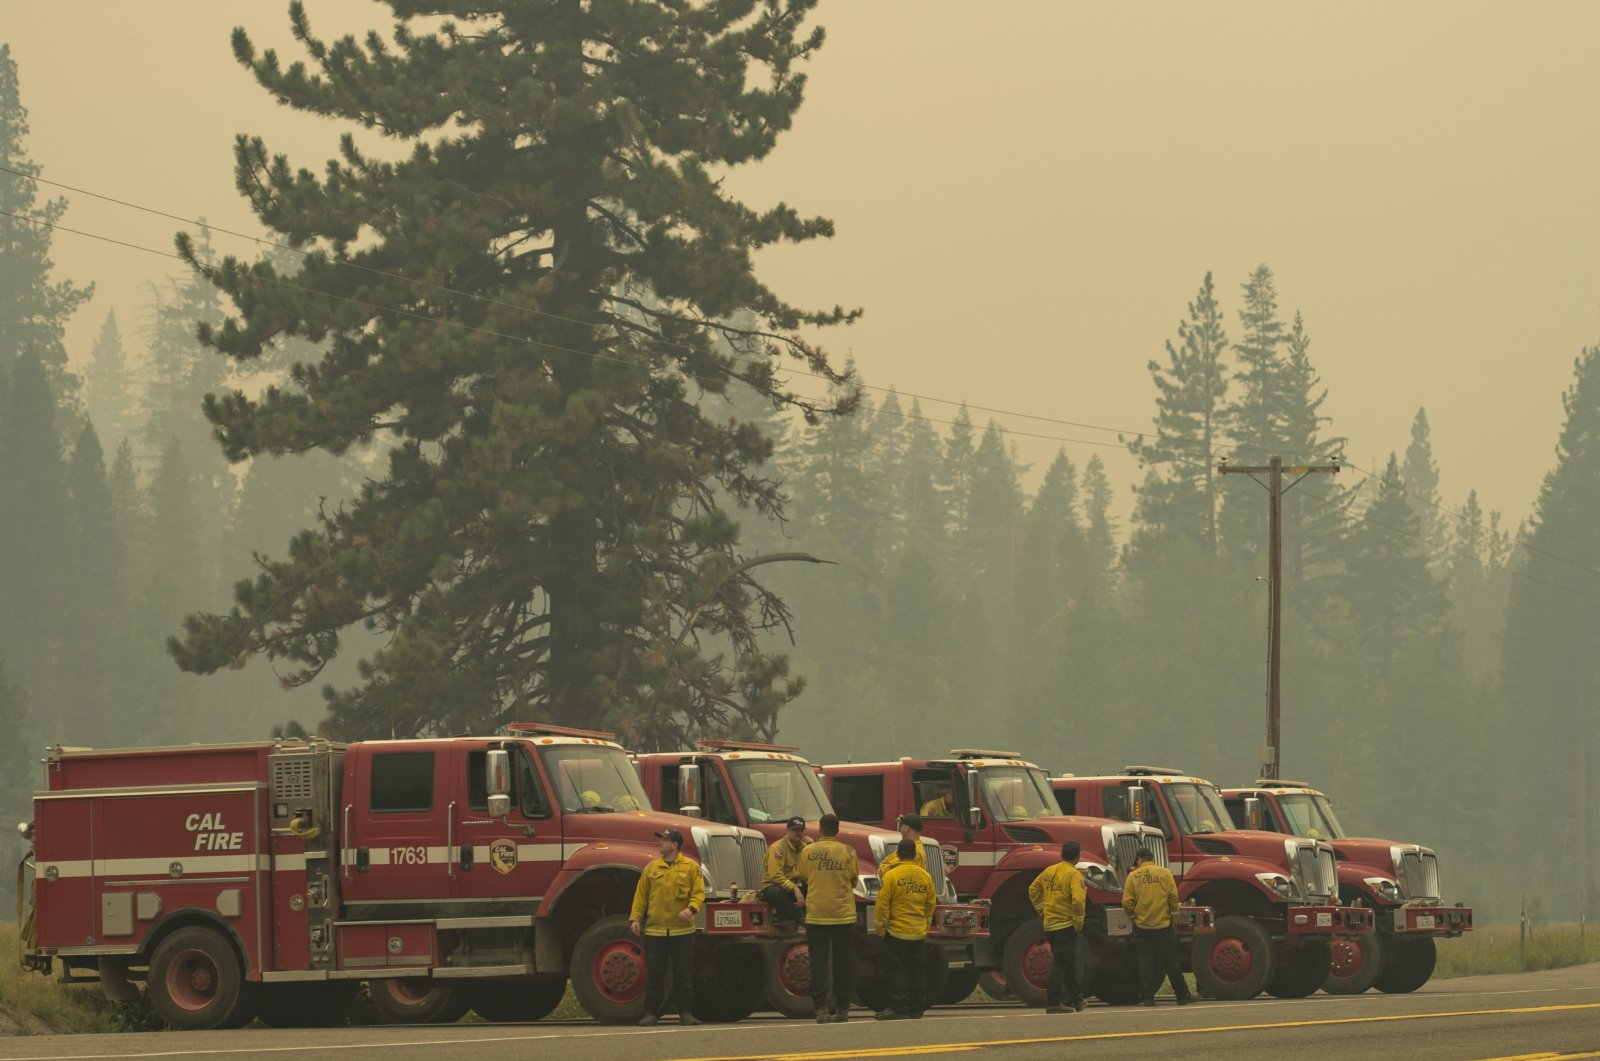 Cal Fire vehicles line up along Highway 50 in Strawberry, California, as smoke from the Caldor Fire burning on both sides of the route fills the air, Calif, U.S., Sunday, Aug. 22, 2021. (Sara Nevis / The Sacramento Bee via AP)